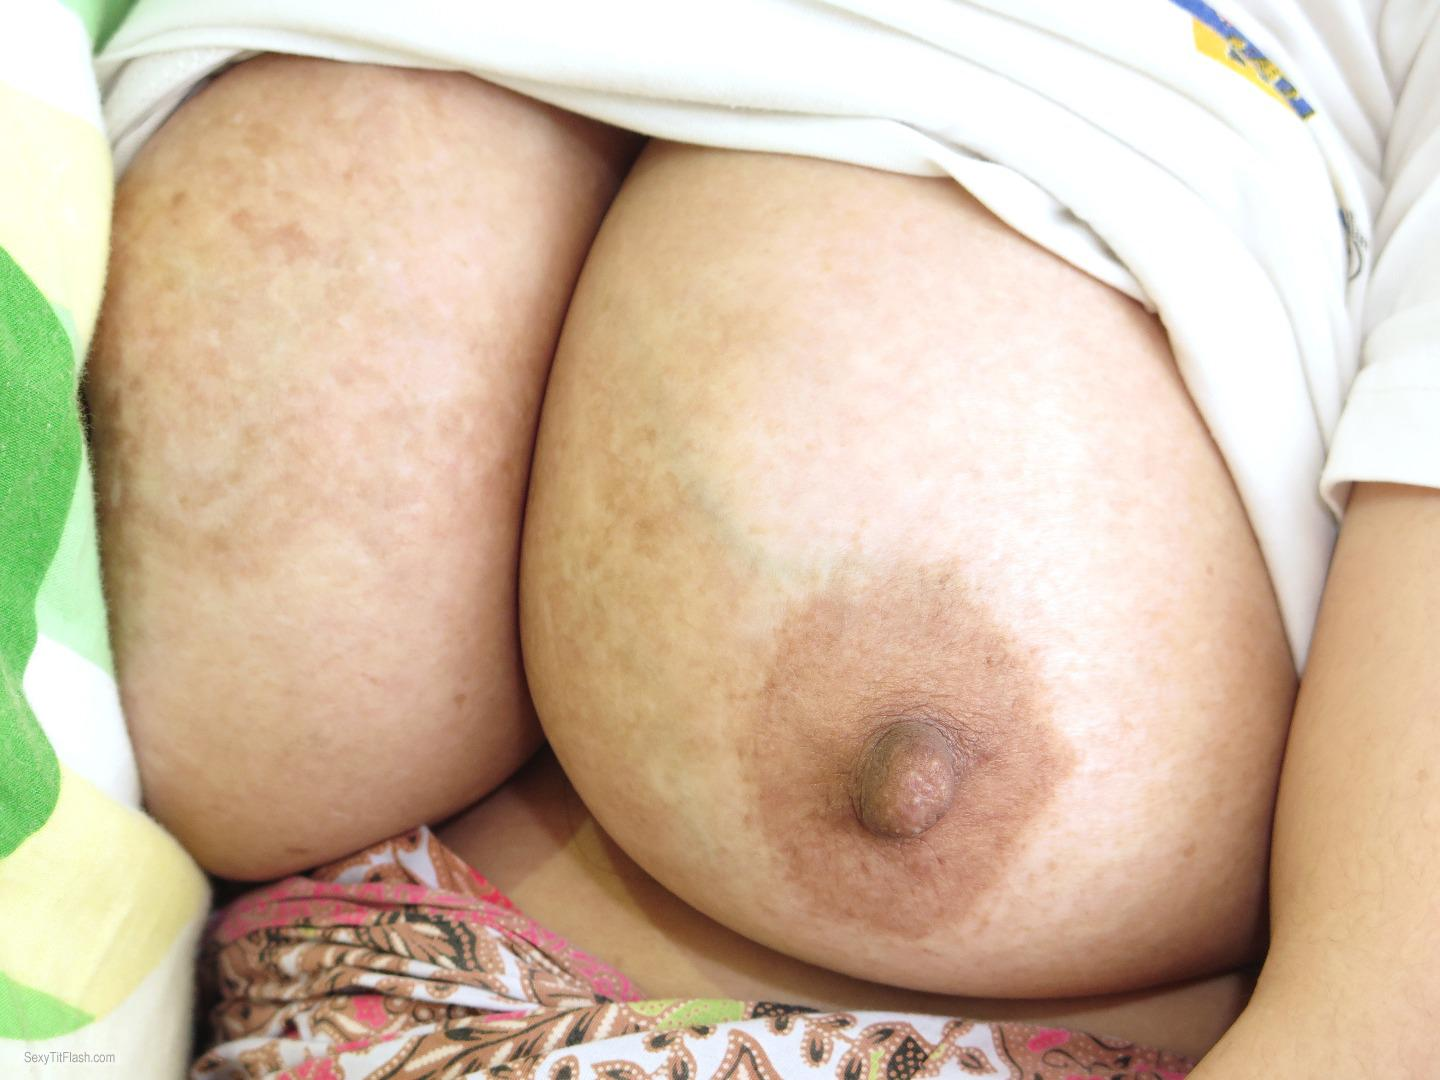 Tit Flash: Wife's Very Big Tits - Z1978 from Indonesia